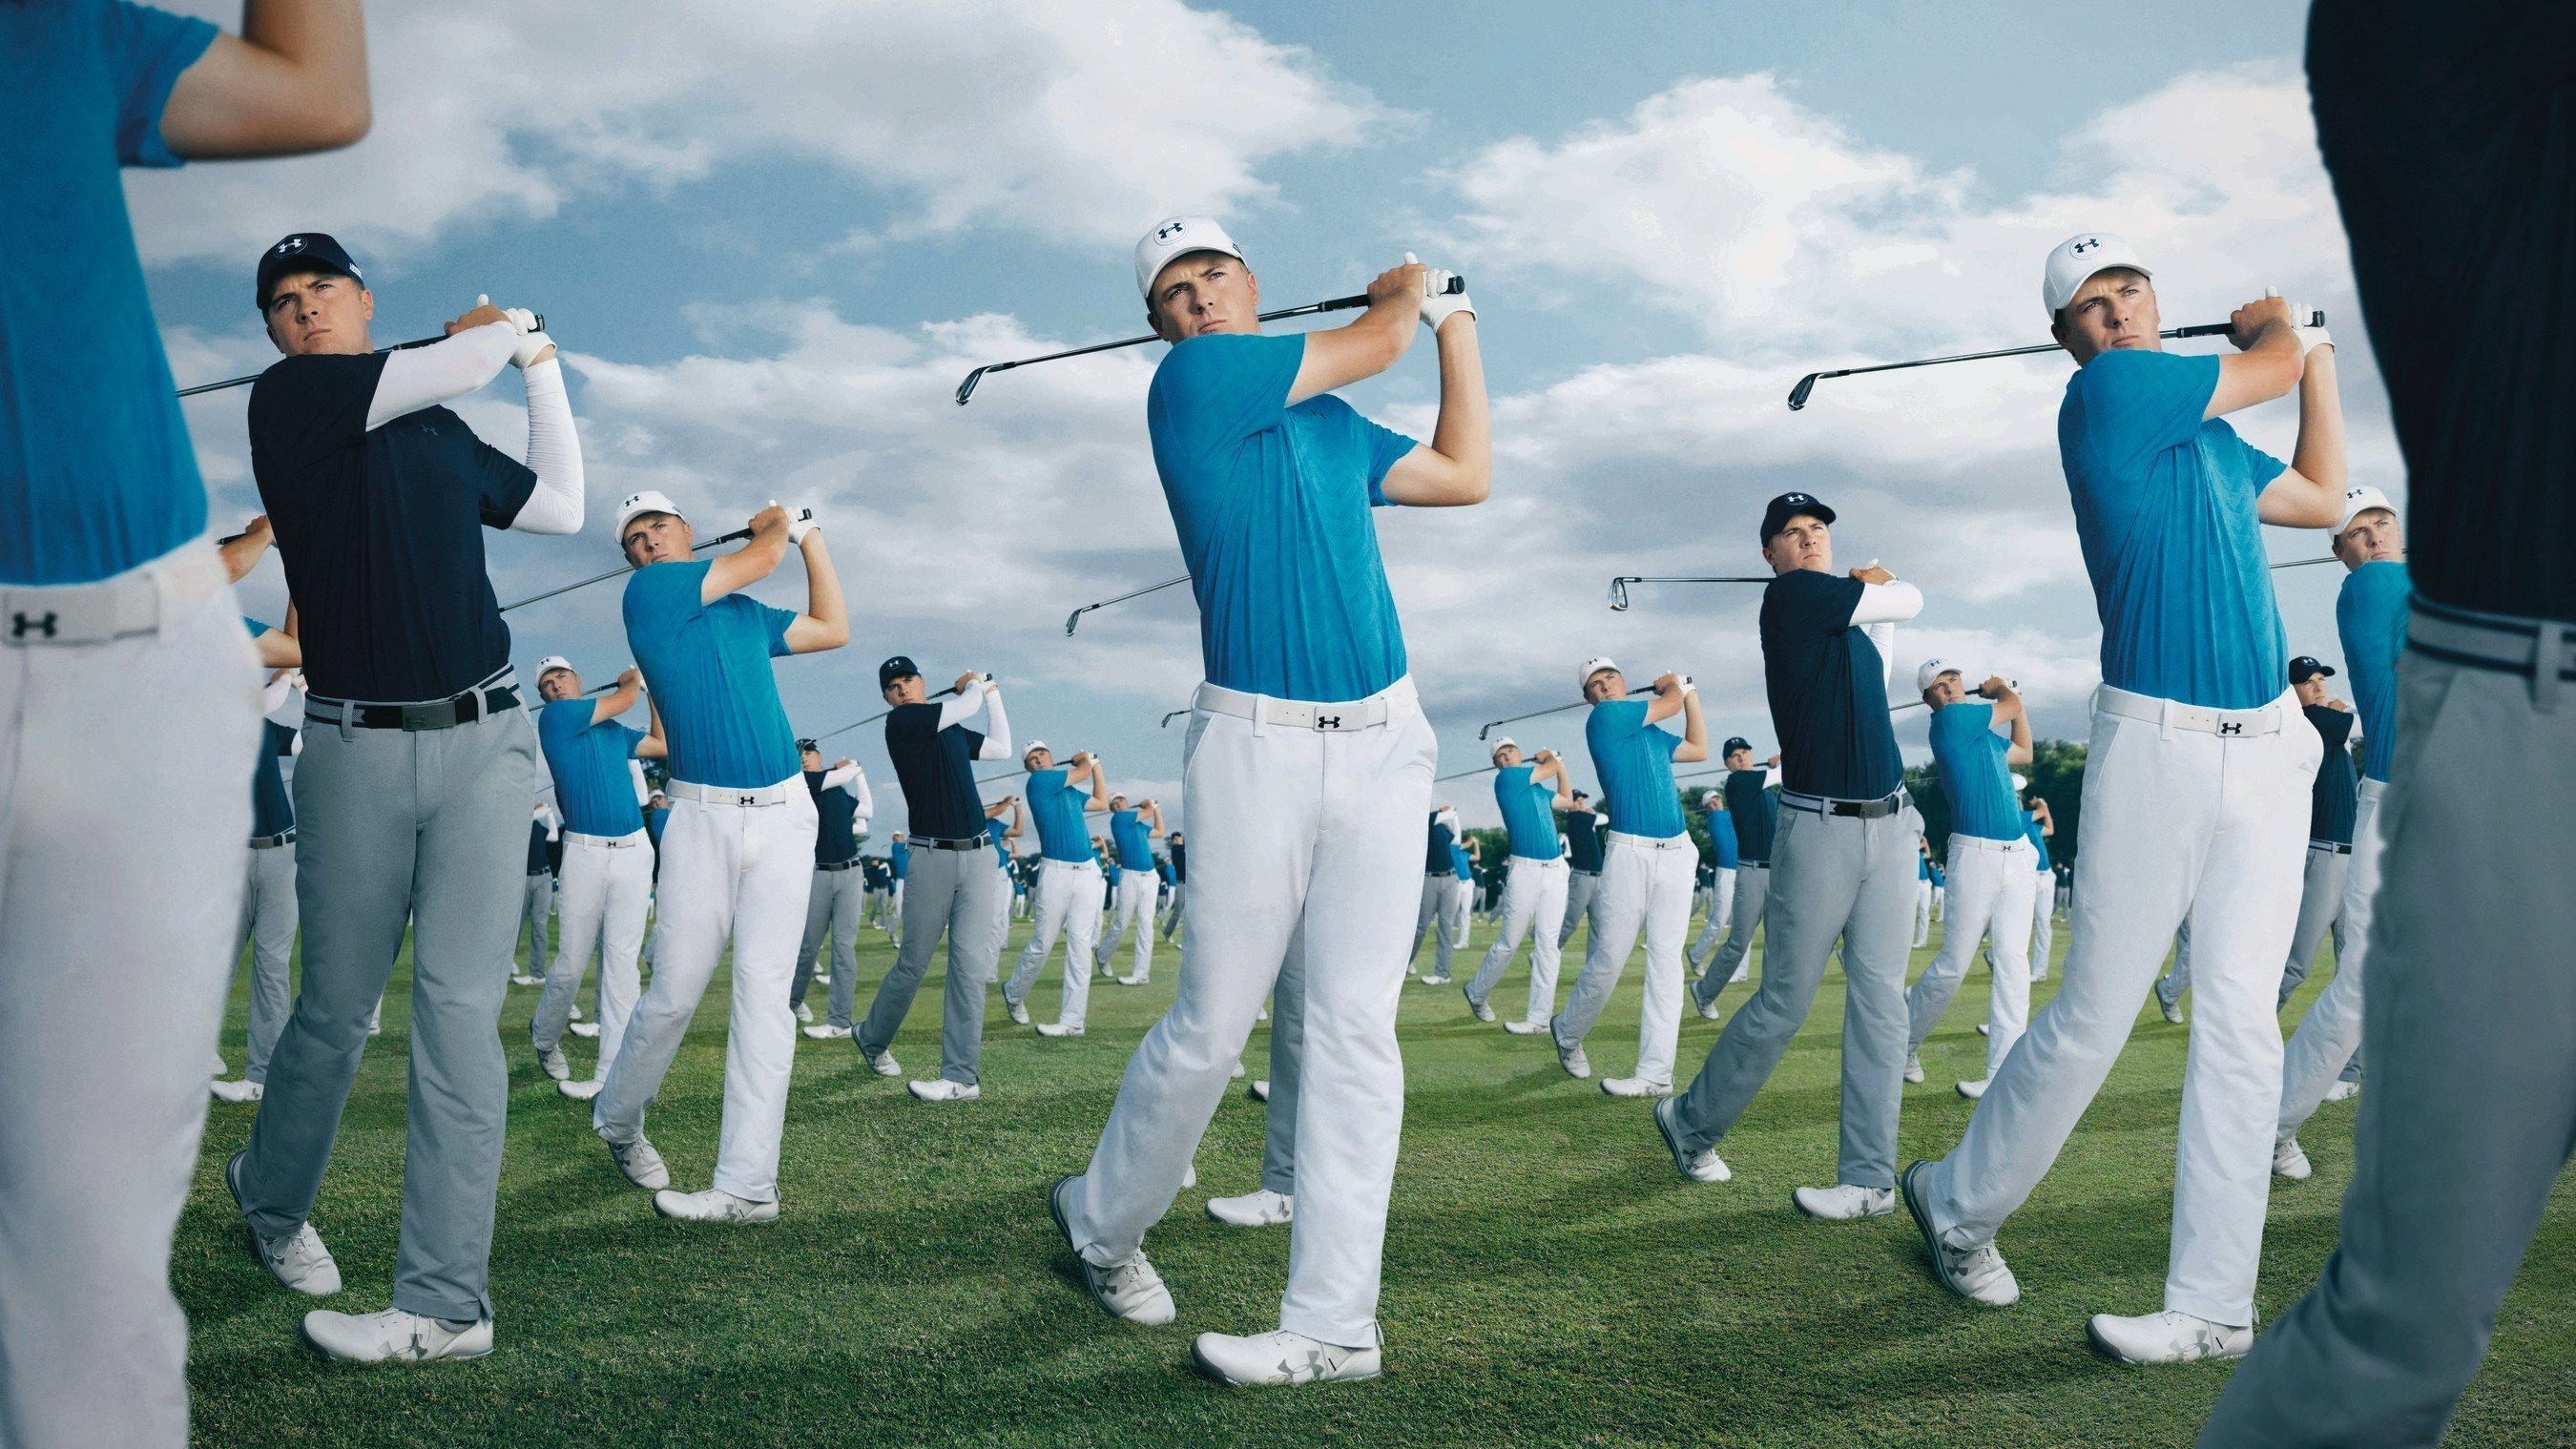 Two-time golf major champion Jordan Spieth in Under Armour's RULE YOURSELF campaign.